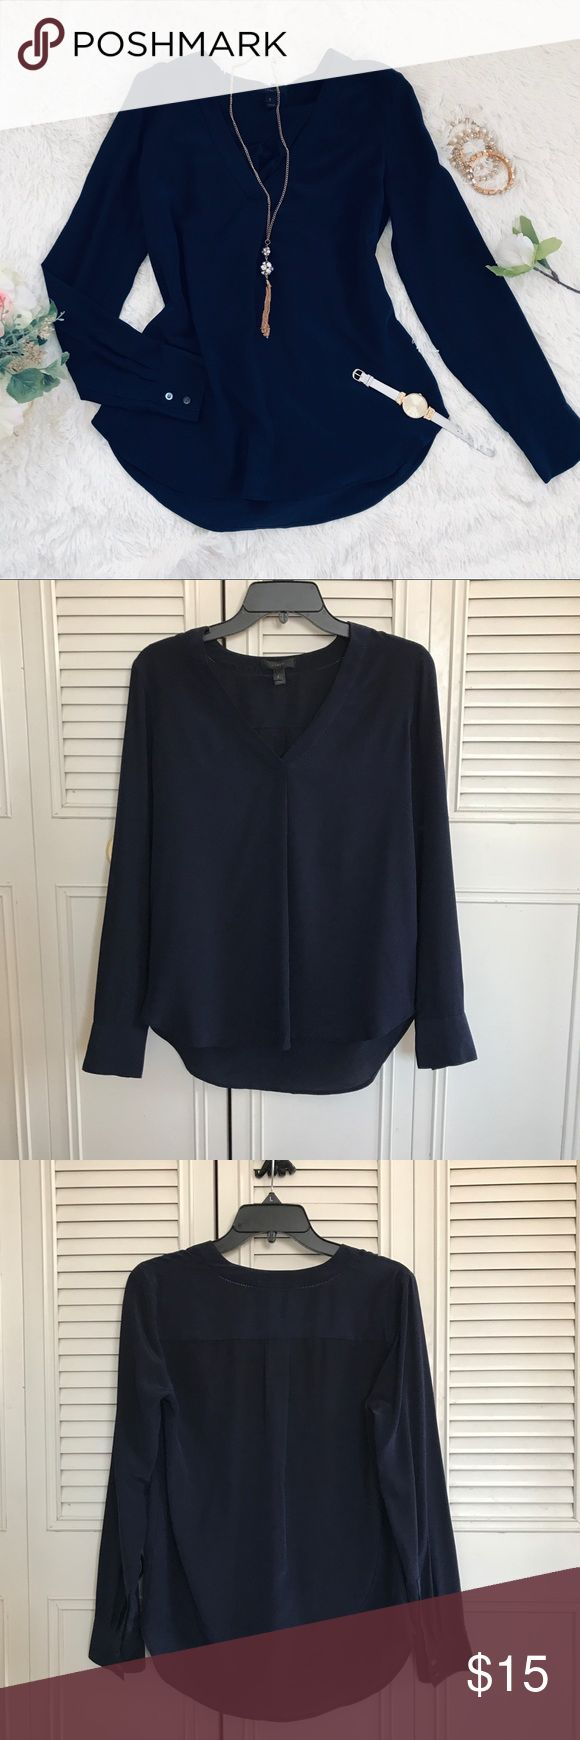 J. Crew Women's Navy Long sleeve top This women's long sleeve top is come in a dark blue navy color. It feature V-neck, plain and simple top. Worn once, still in good condition.   Material: See last picture of material.   Best offer accept. J. Crew Tops Blouses